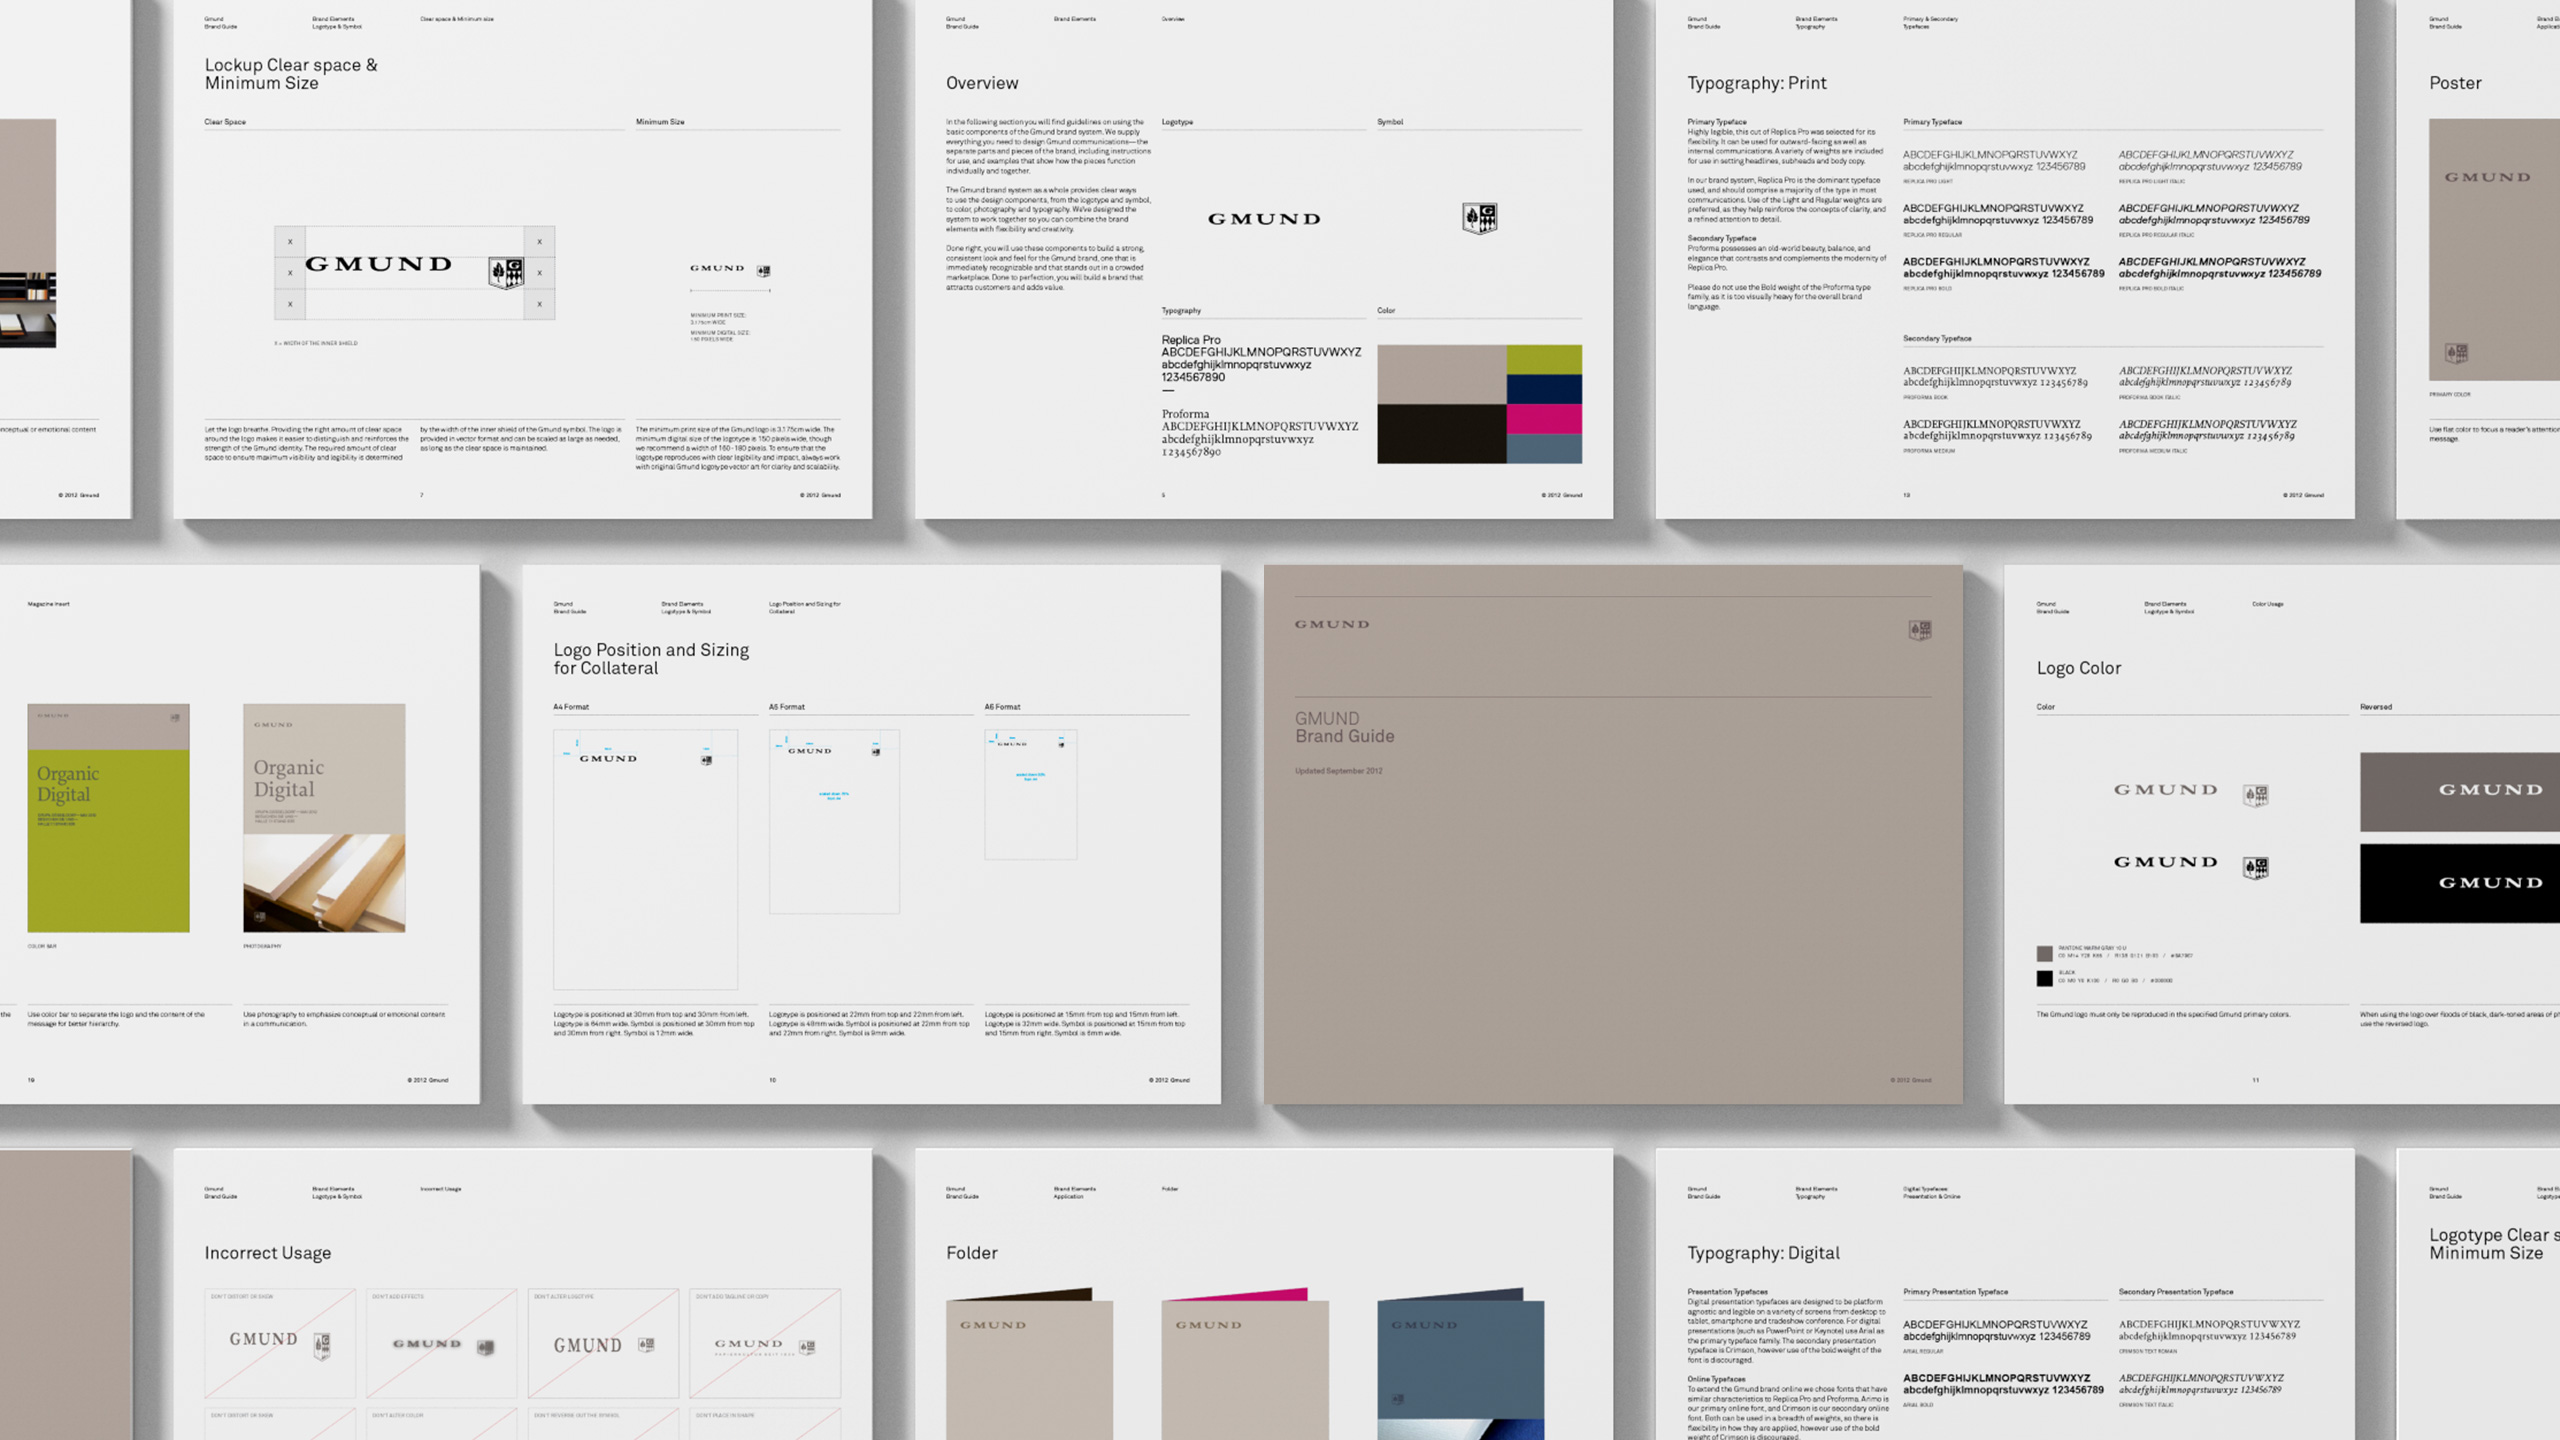 Gmund Brand Refresh Guidelines